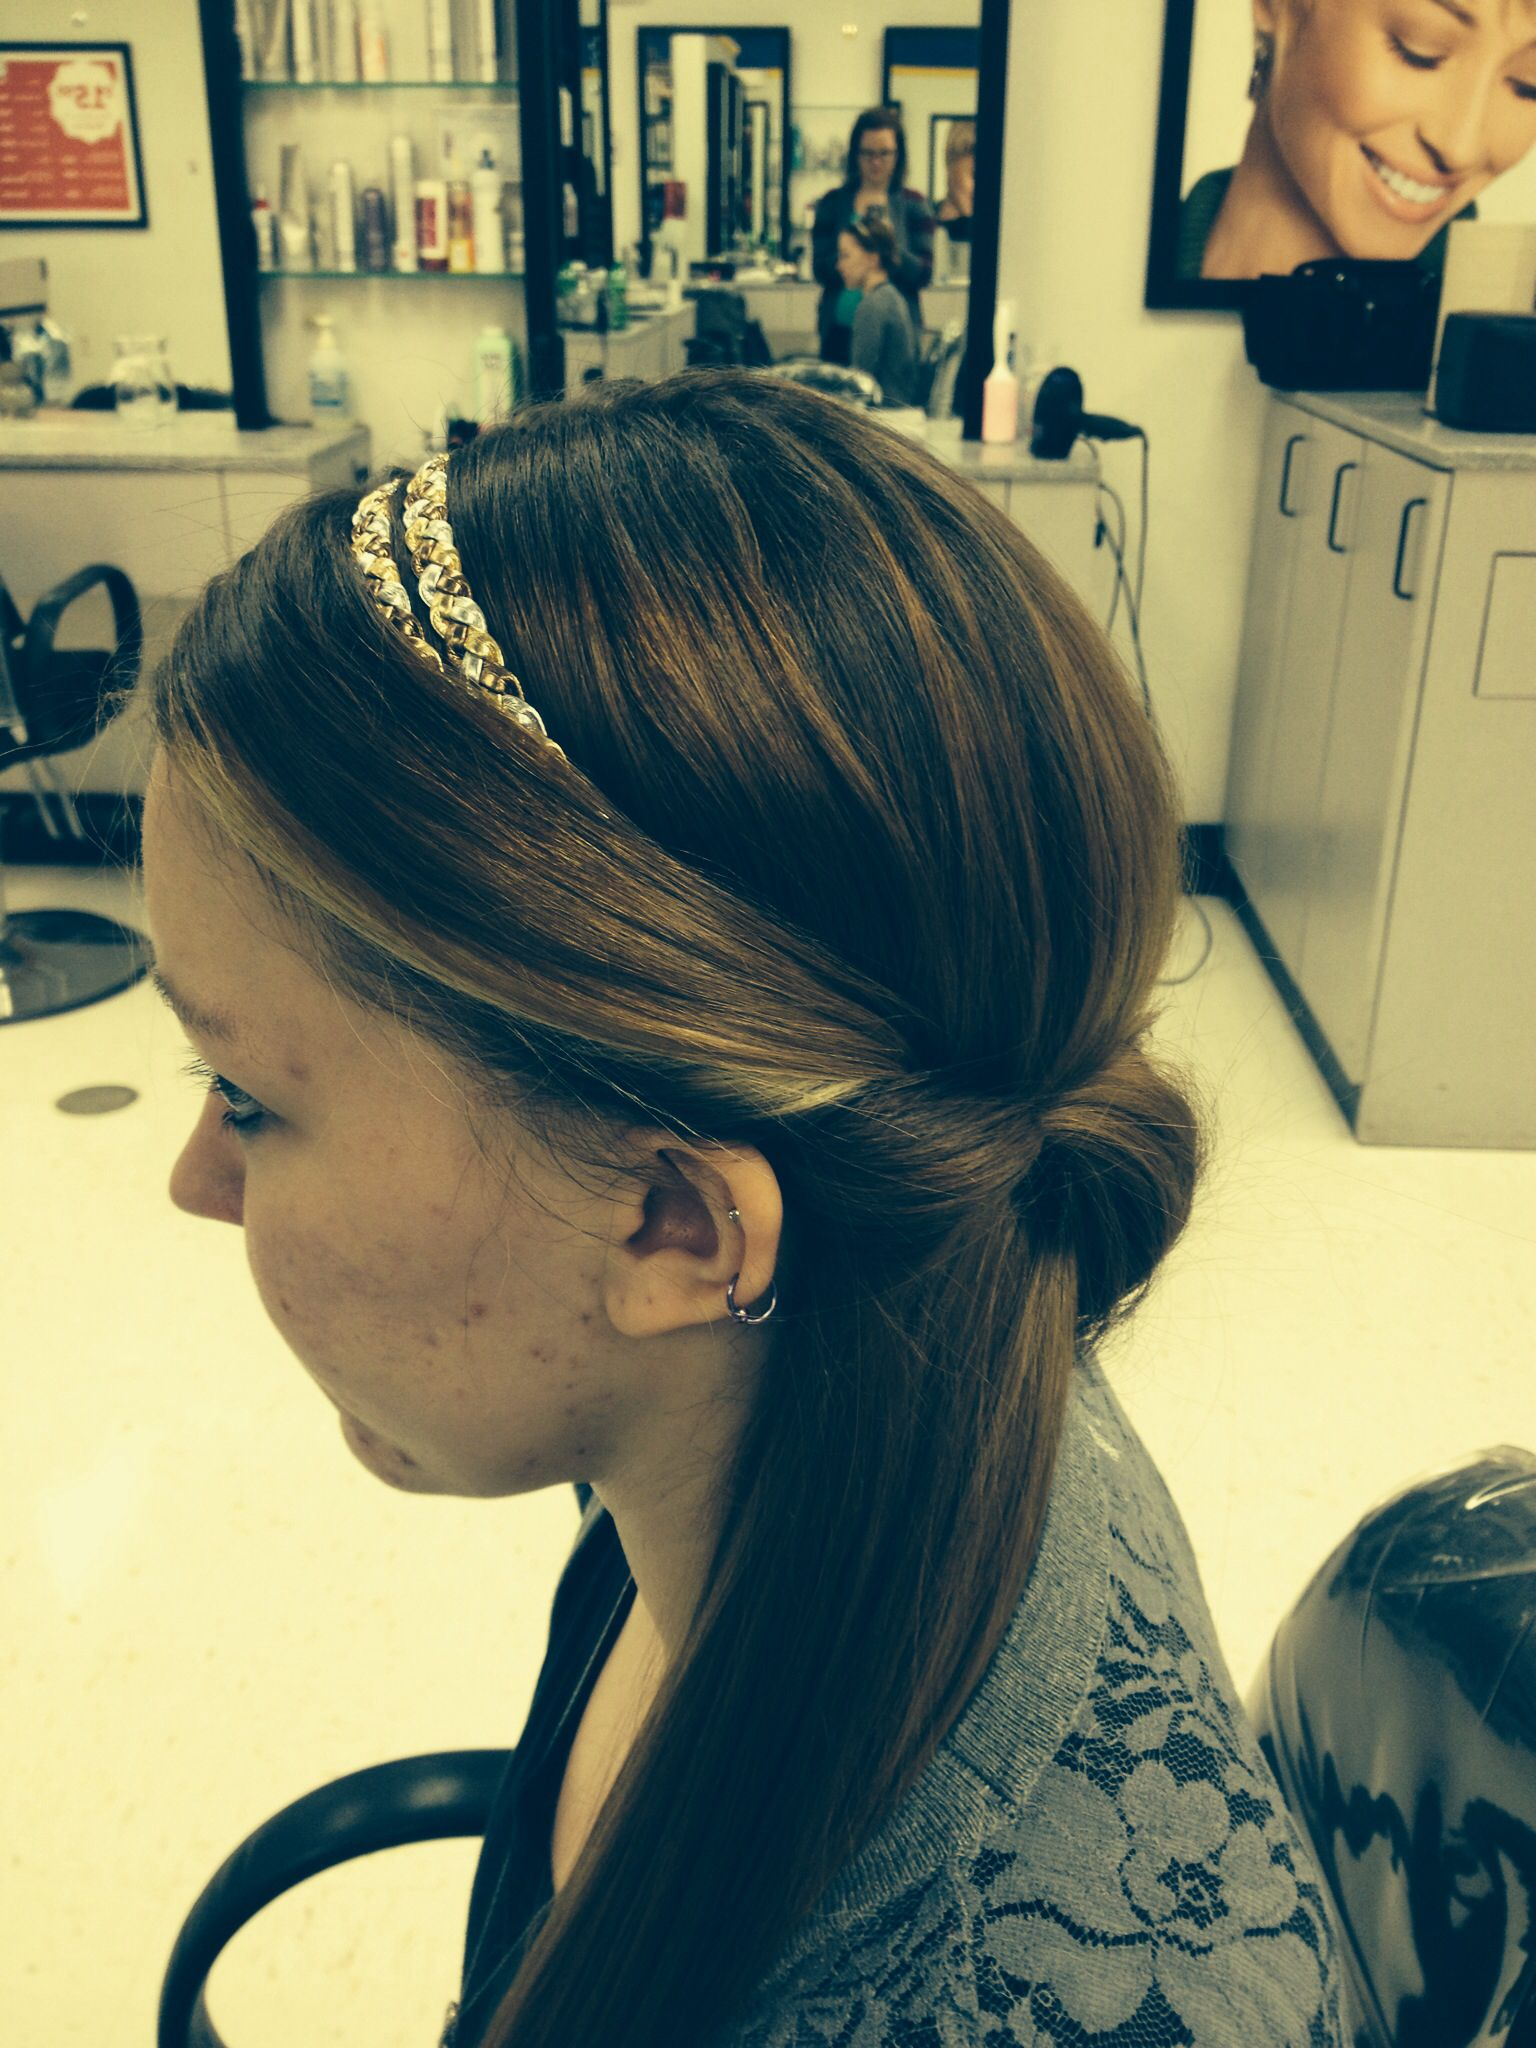 Simple hairstyle done with headband | Easy hairstyles, Hair styles, Hairstyle